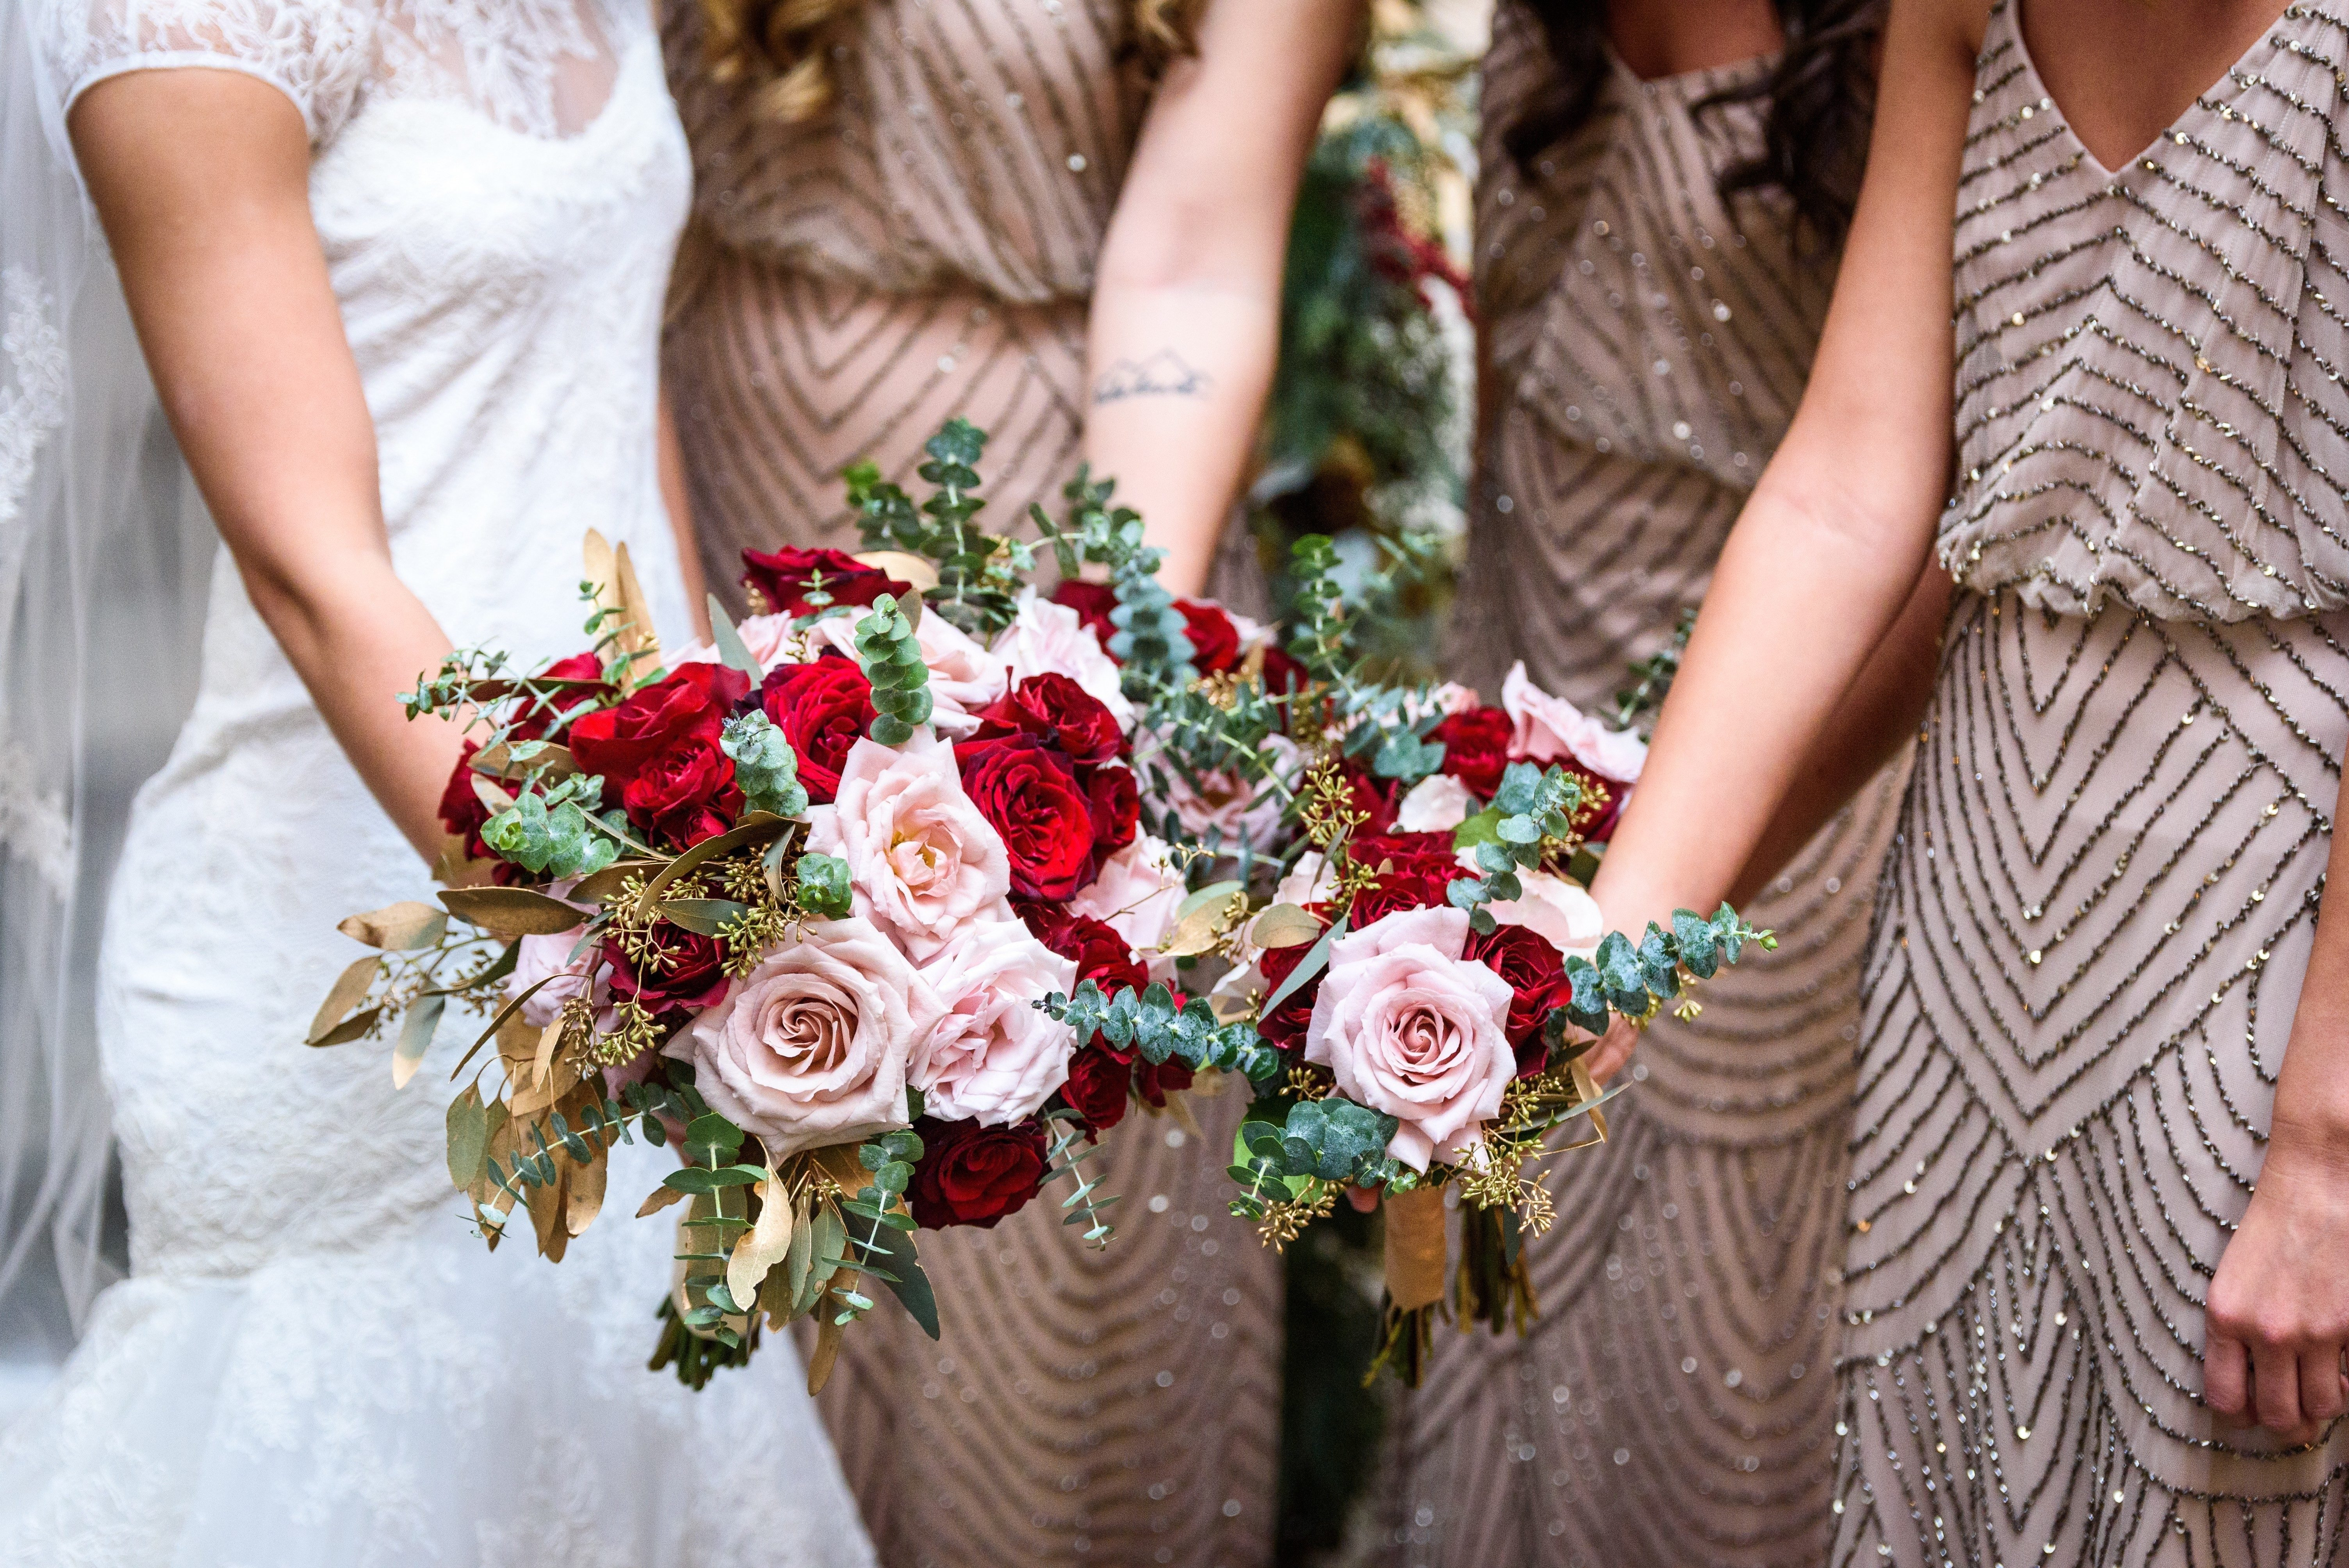 Wedding Dresses, Bridesmaids, and bouquets